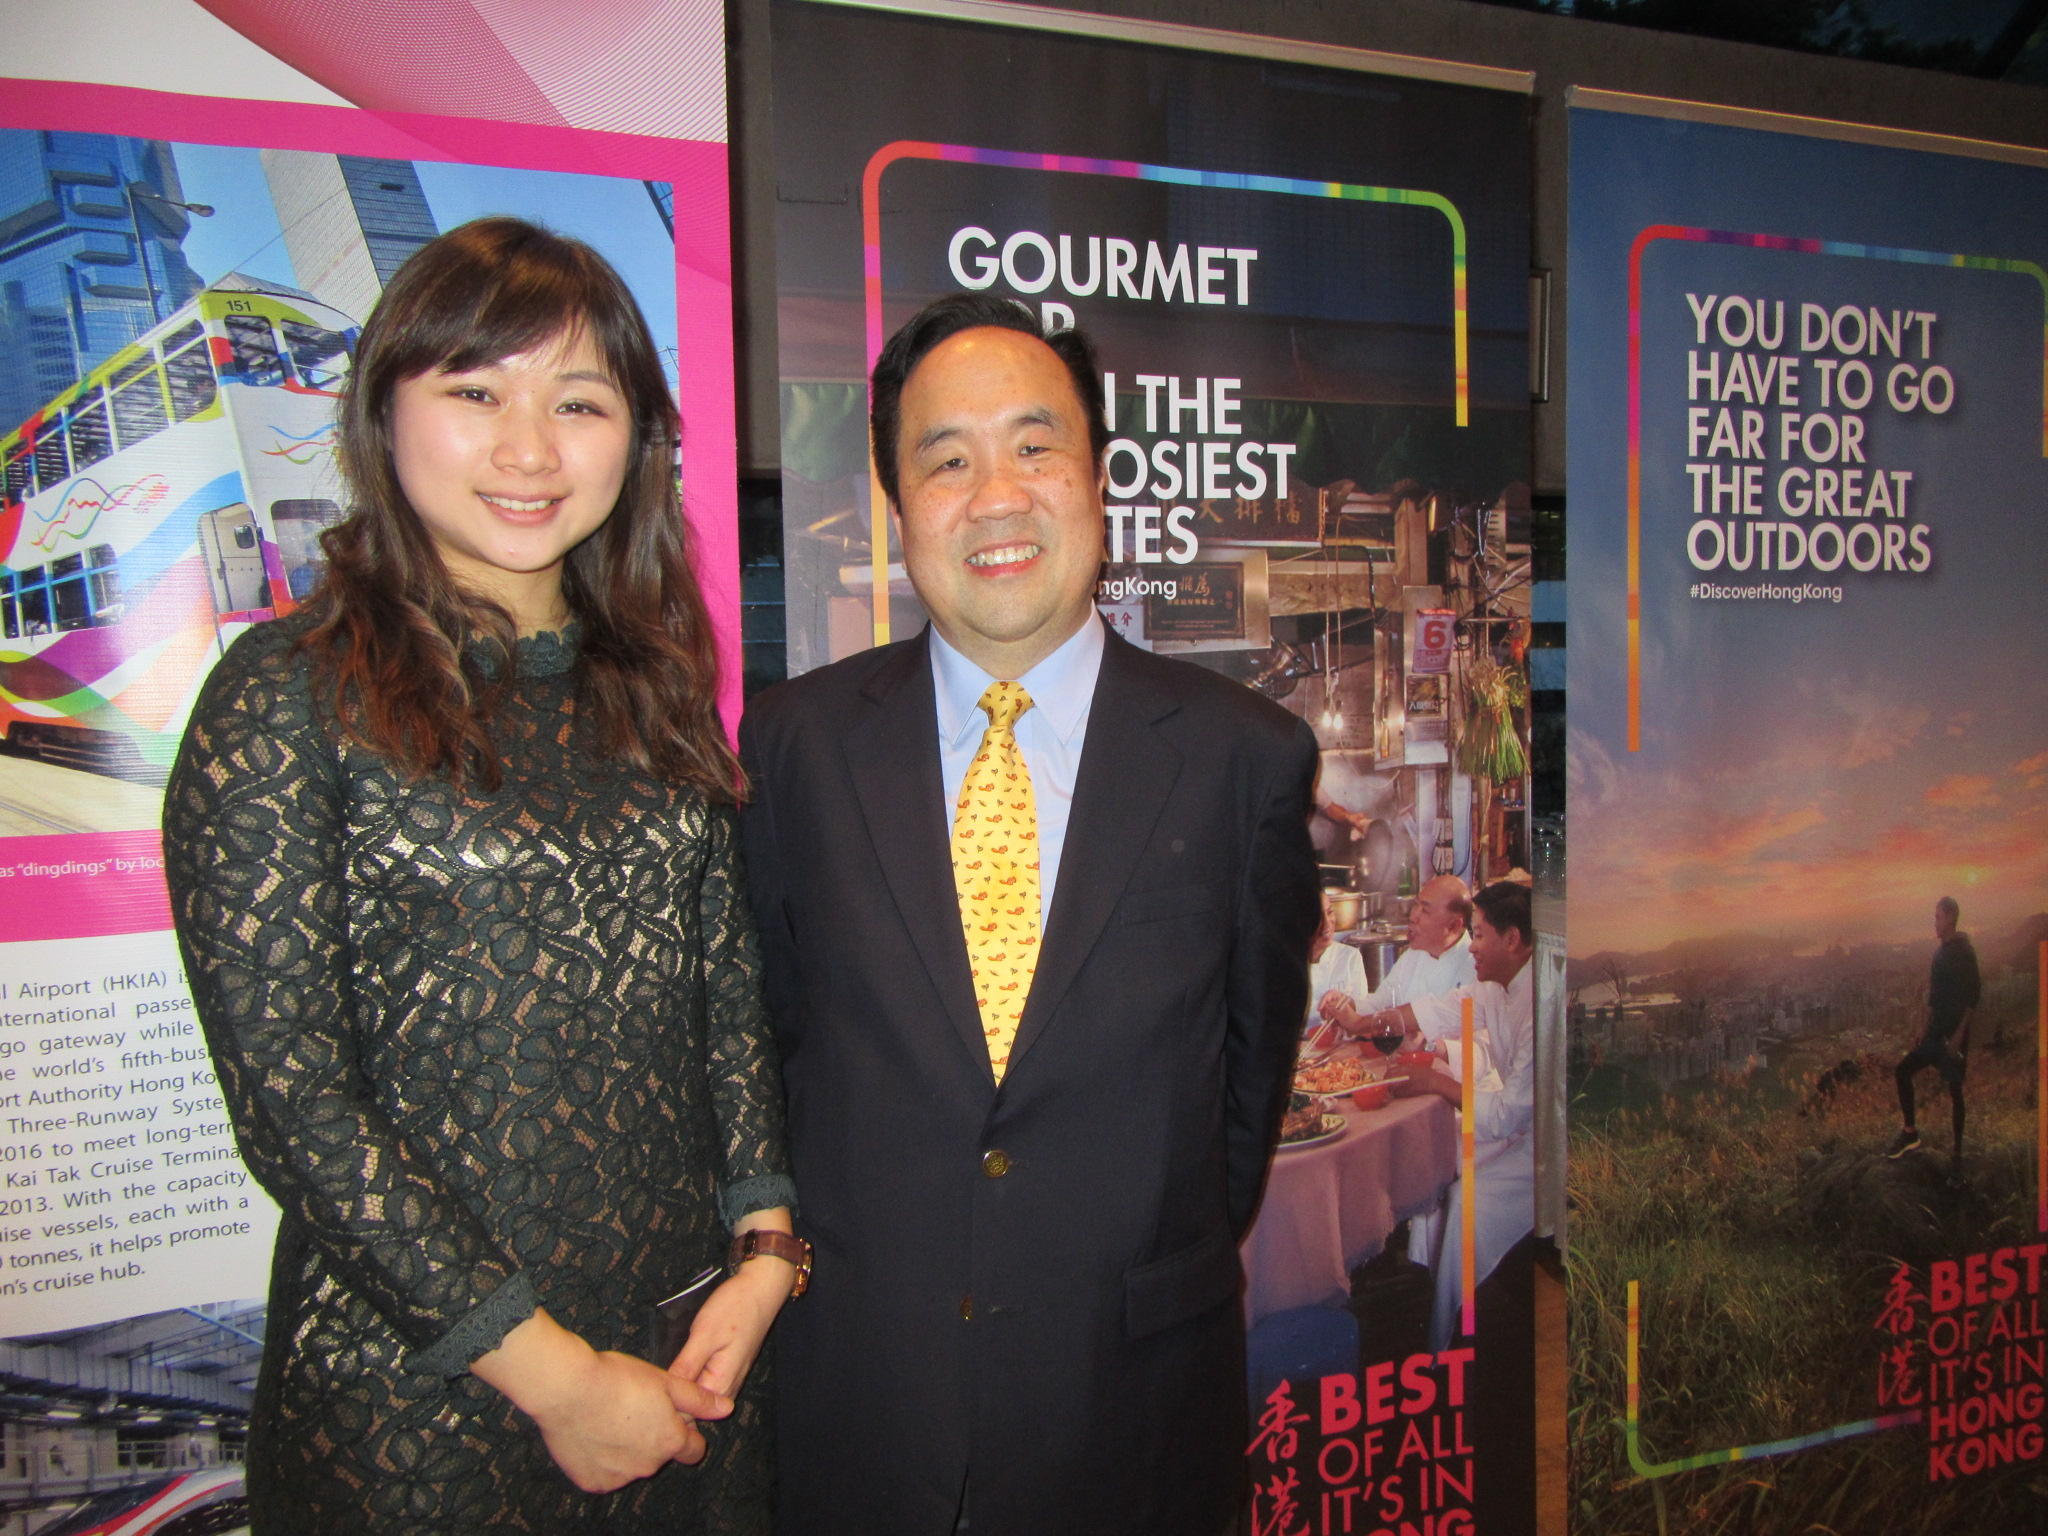 Hong Kong Tourism Board celebrates New Year with lucky numbers